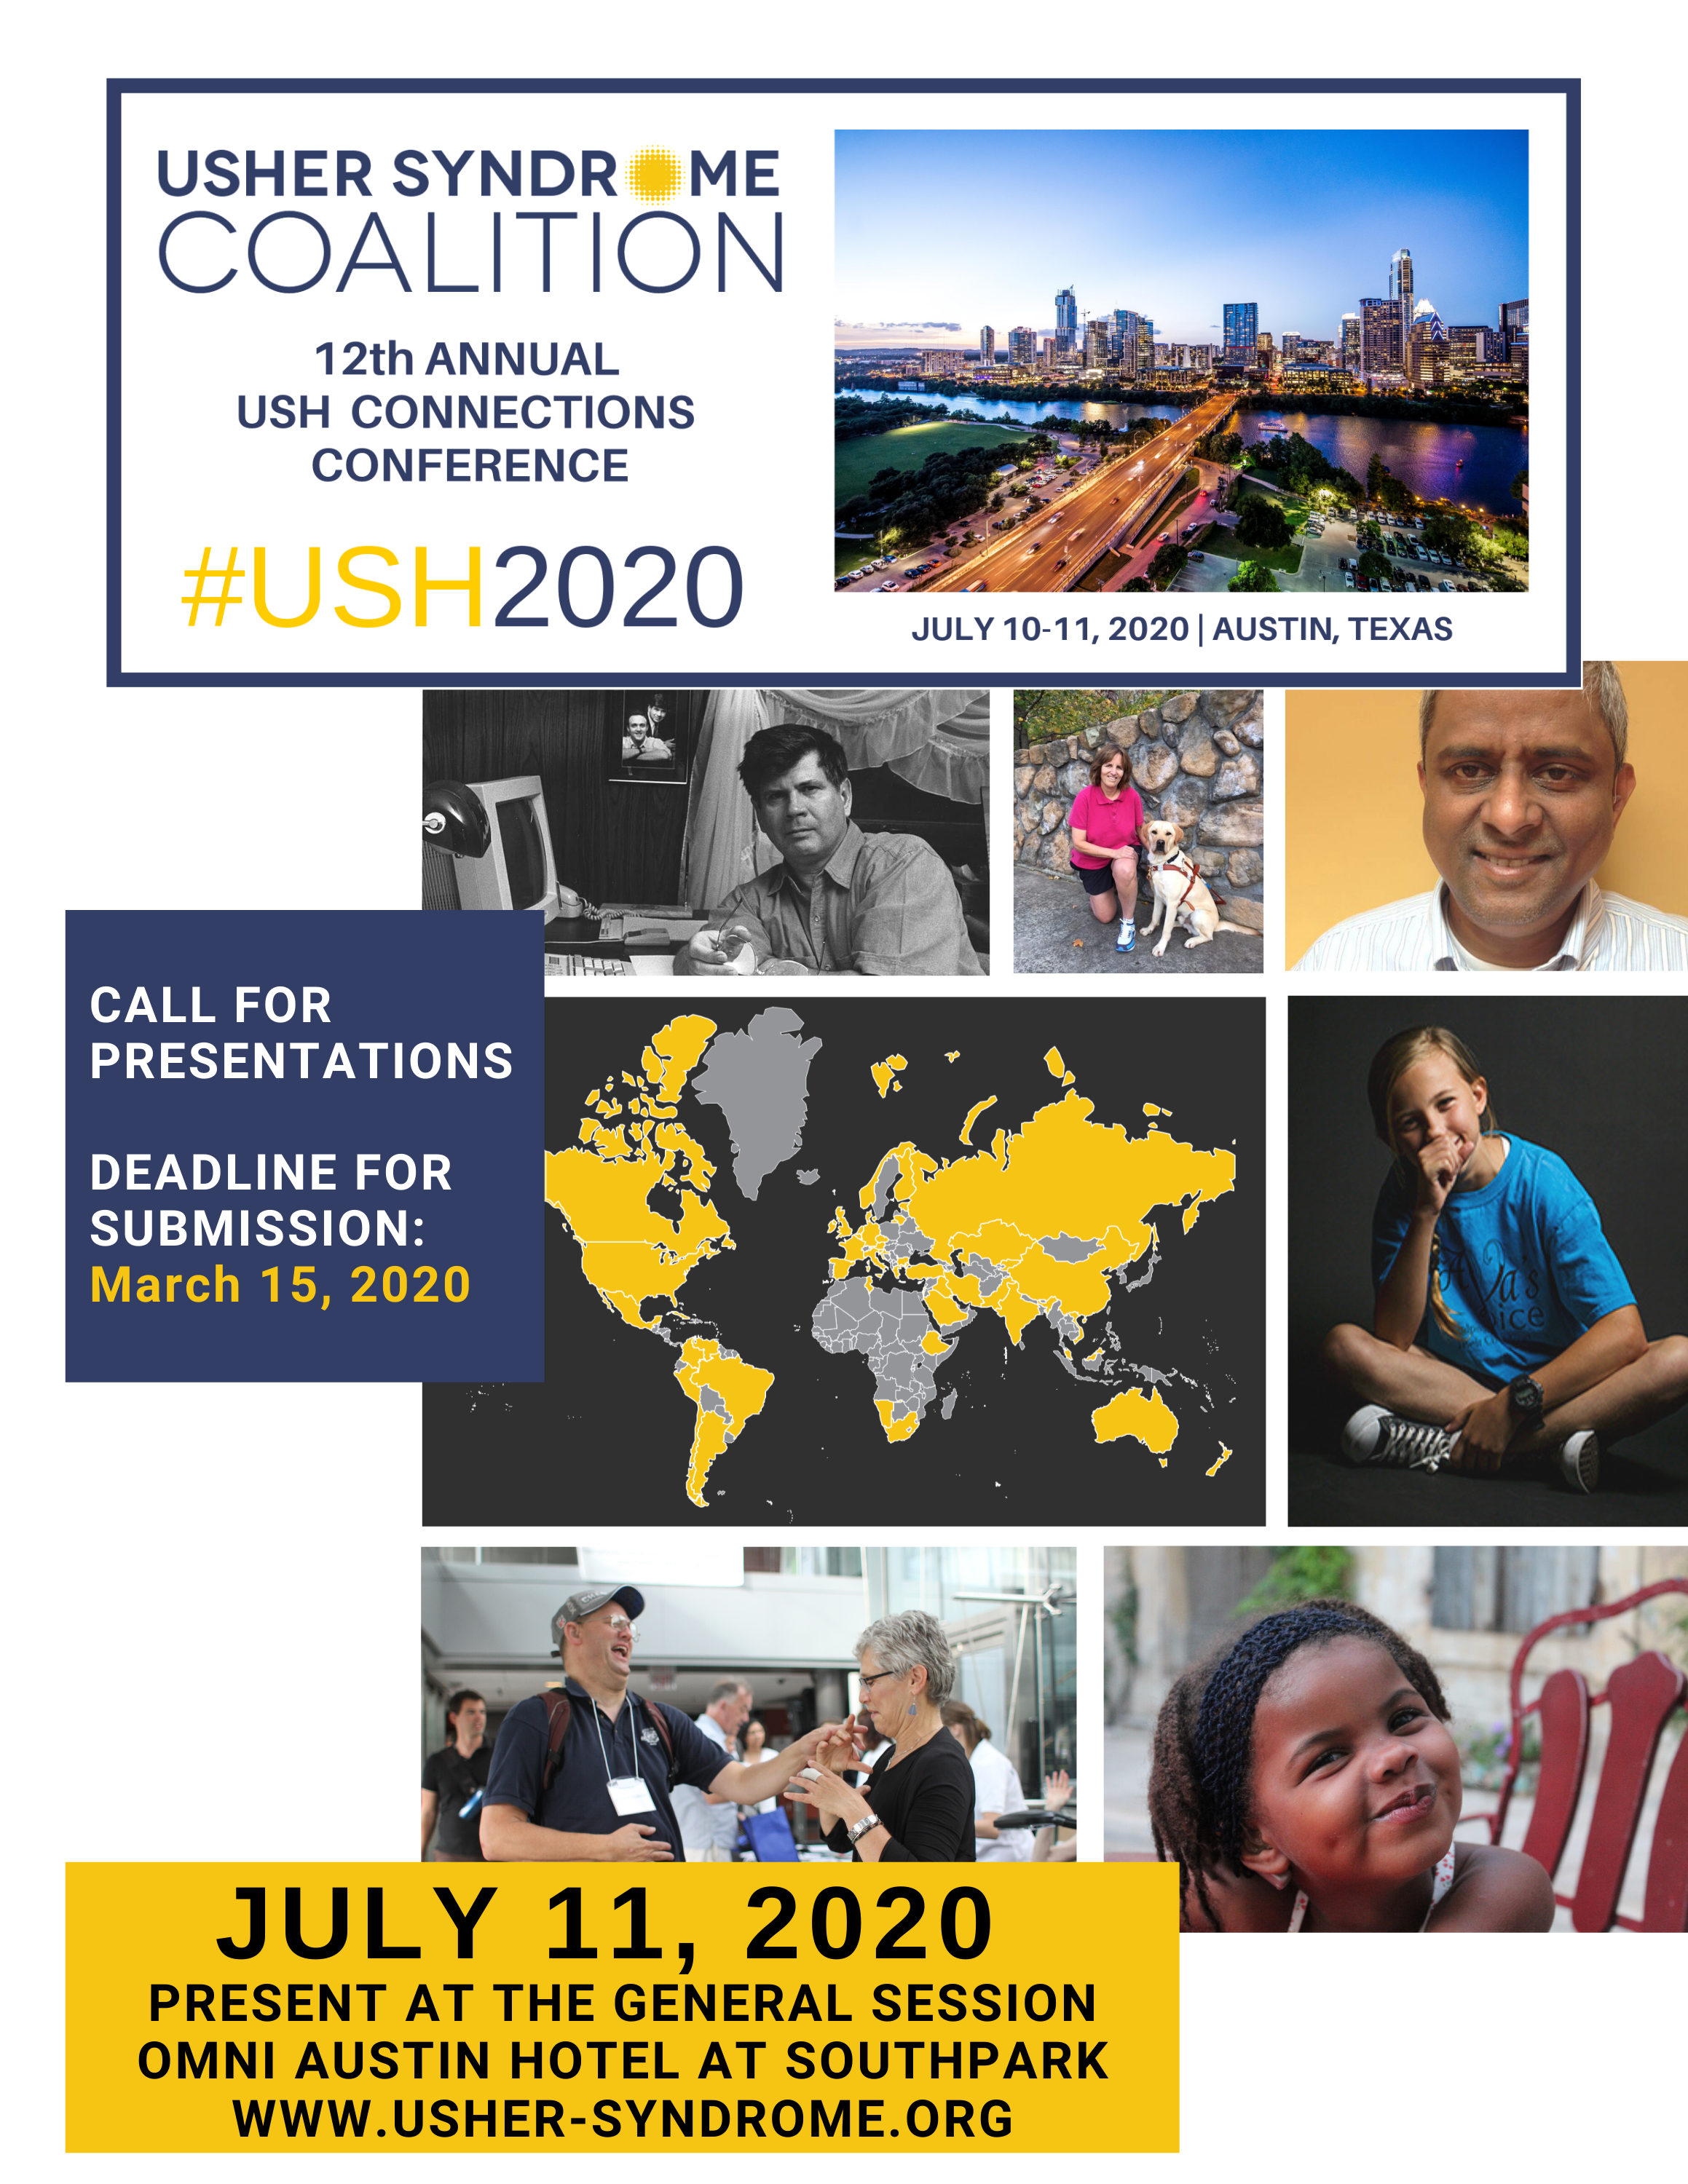 Cover Image for USH2020 Call for Presentations Form: Usher Syndrome Coalition 11th Annual USH Connections Conference, #USH2020, Saturday, July 11, 2020, Austin, Texas, Call for Presentations Deadline for Submission: March 15, 2020